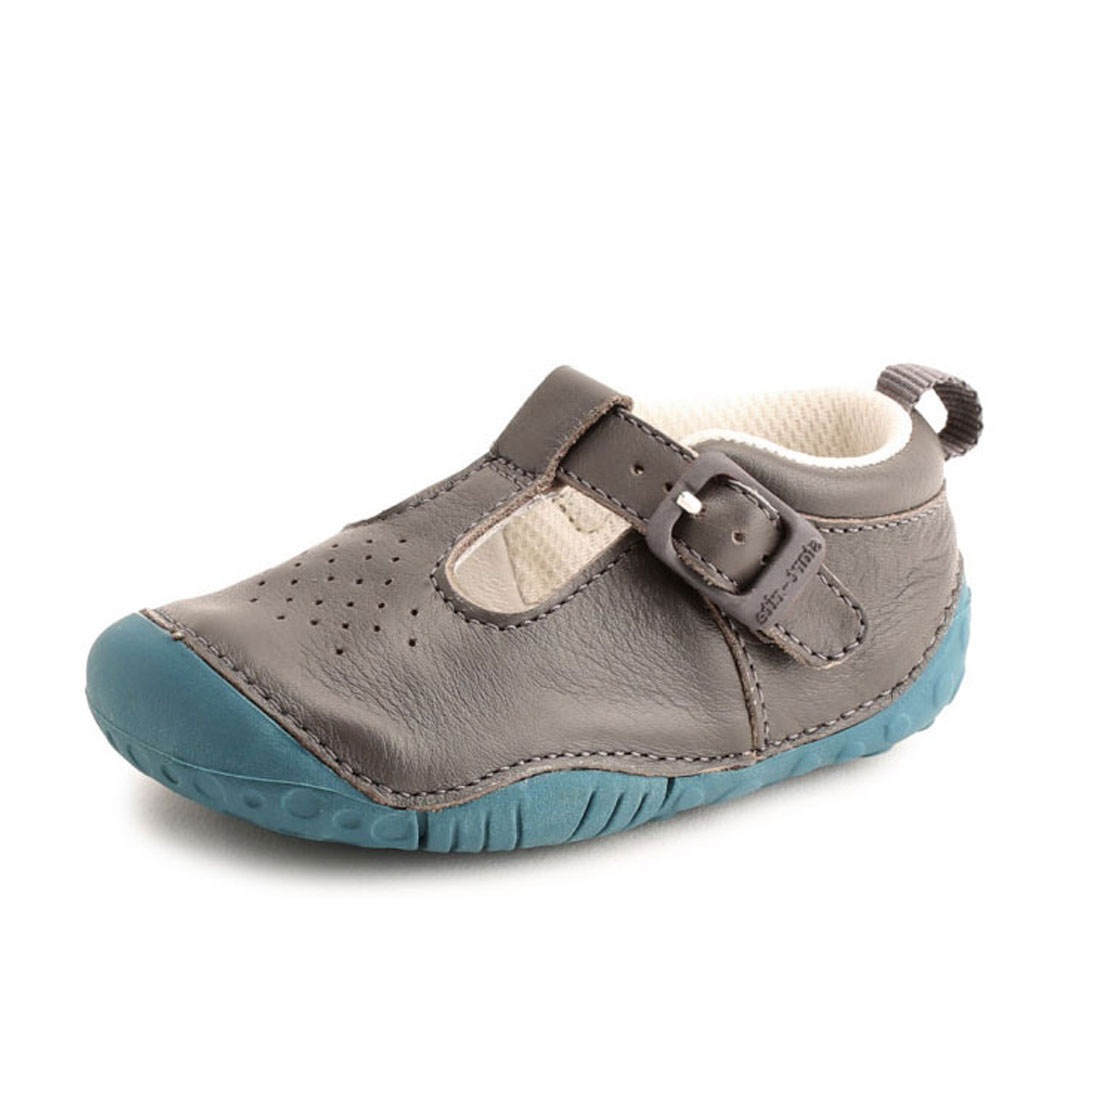 import baby shoes wholesale children's footwear kid leather toddler shoes